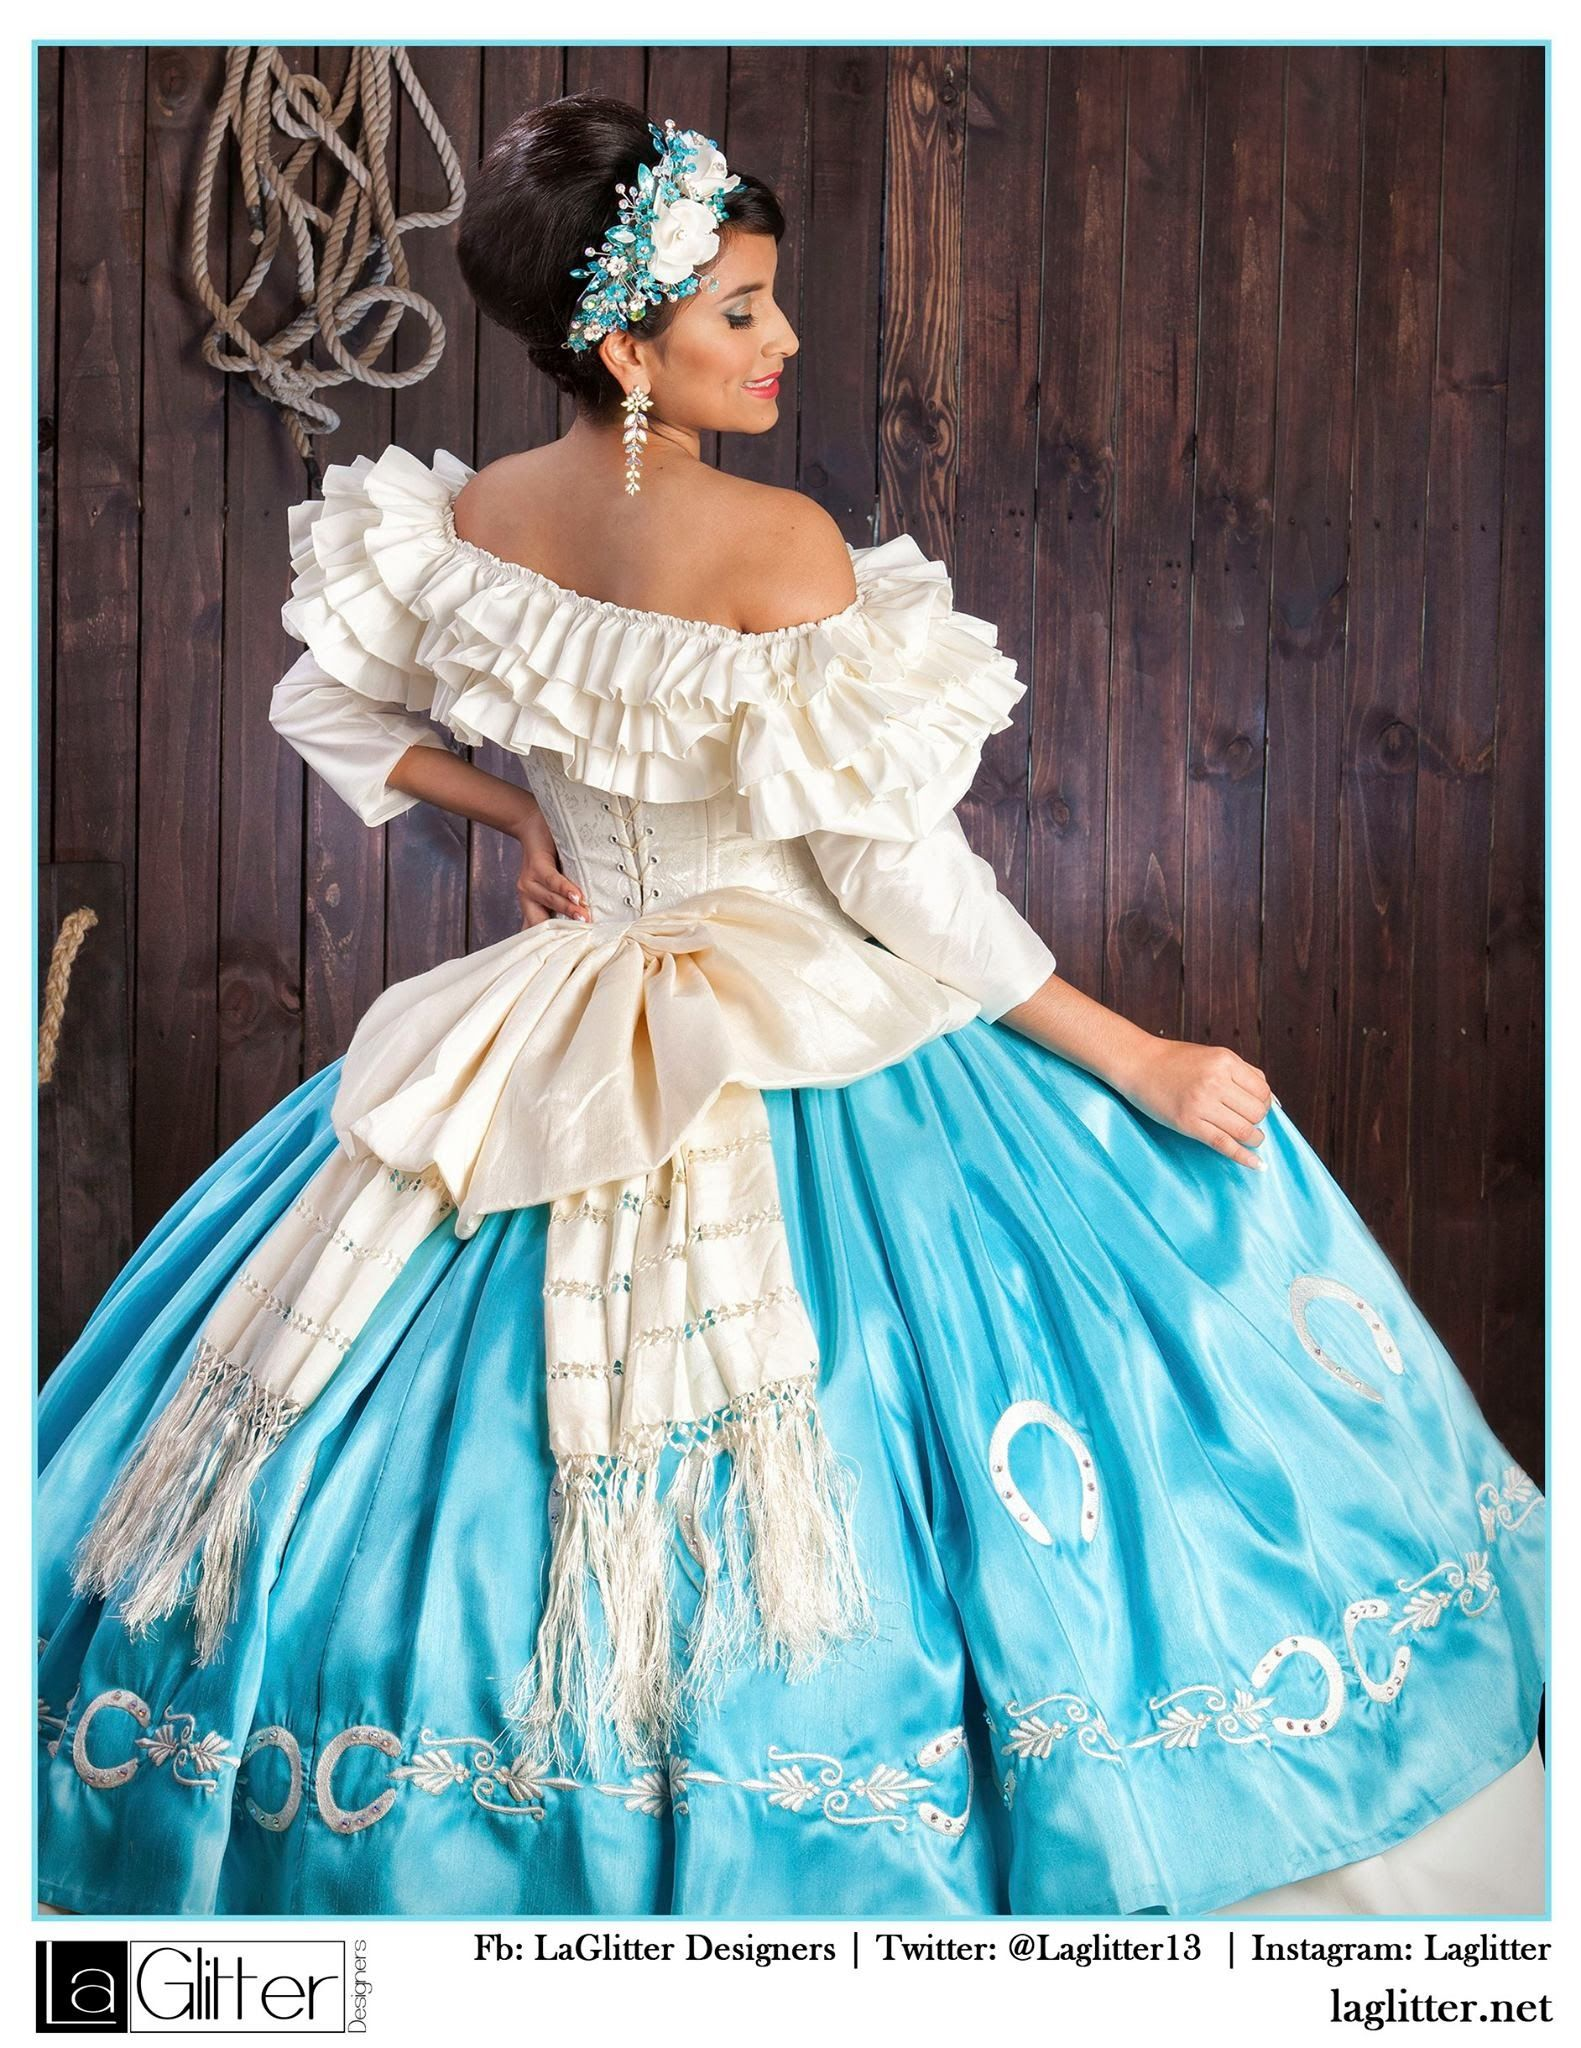 Pin by Magdalena on Vestidos charros de quinceañera | Pinterest